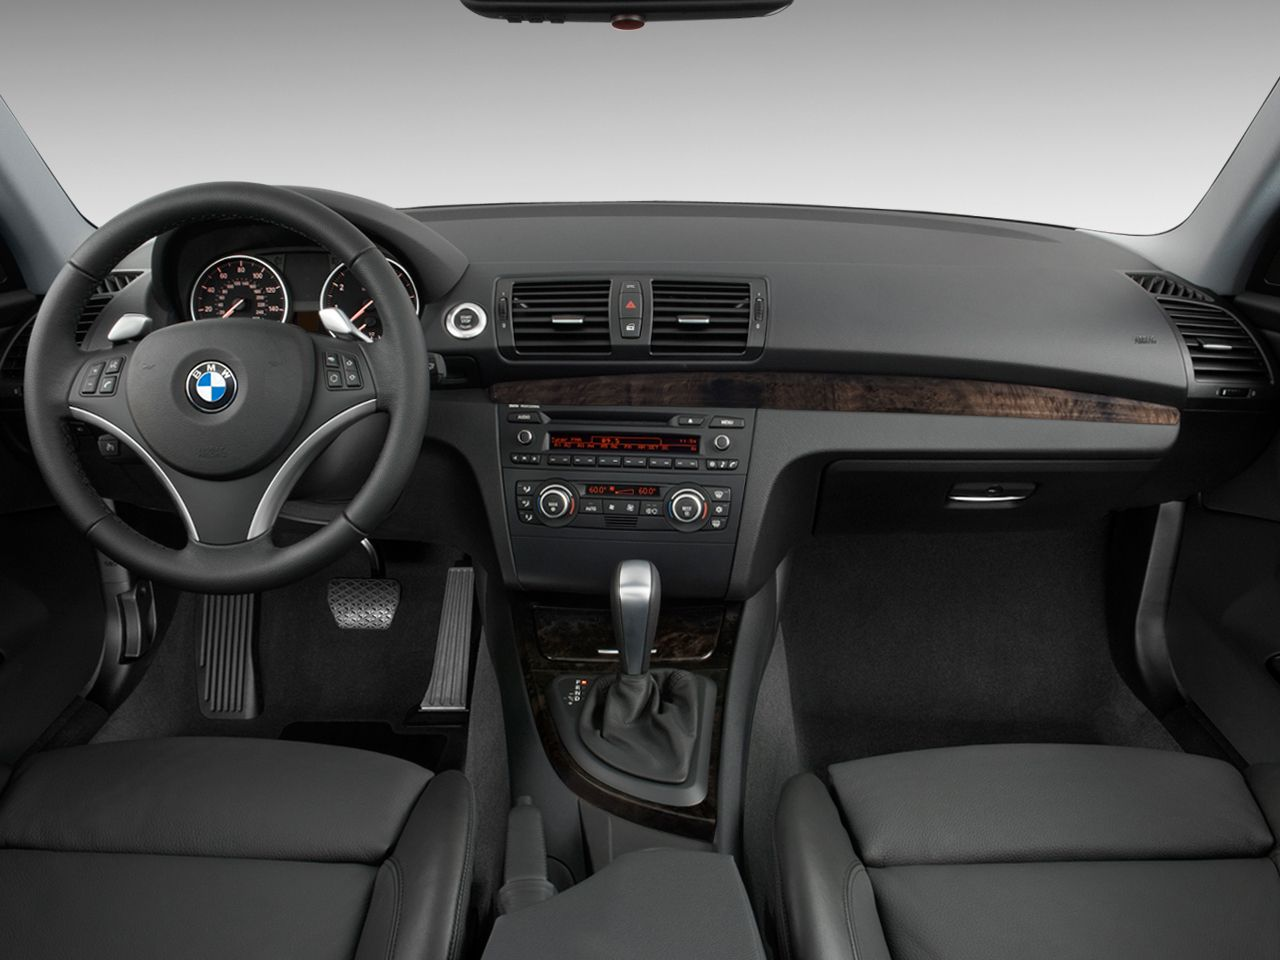 BMW 128i Interior Nice  BMW Wallpapers  Pinterest  BMW